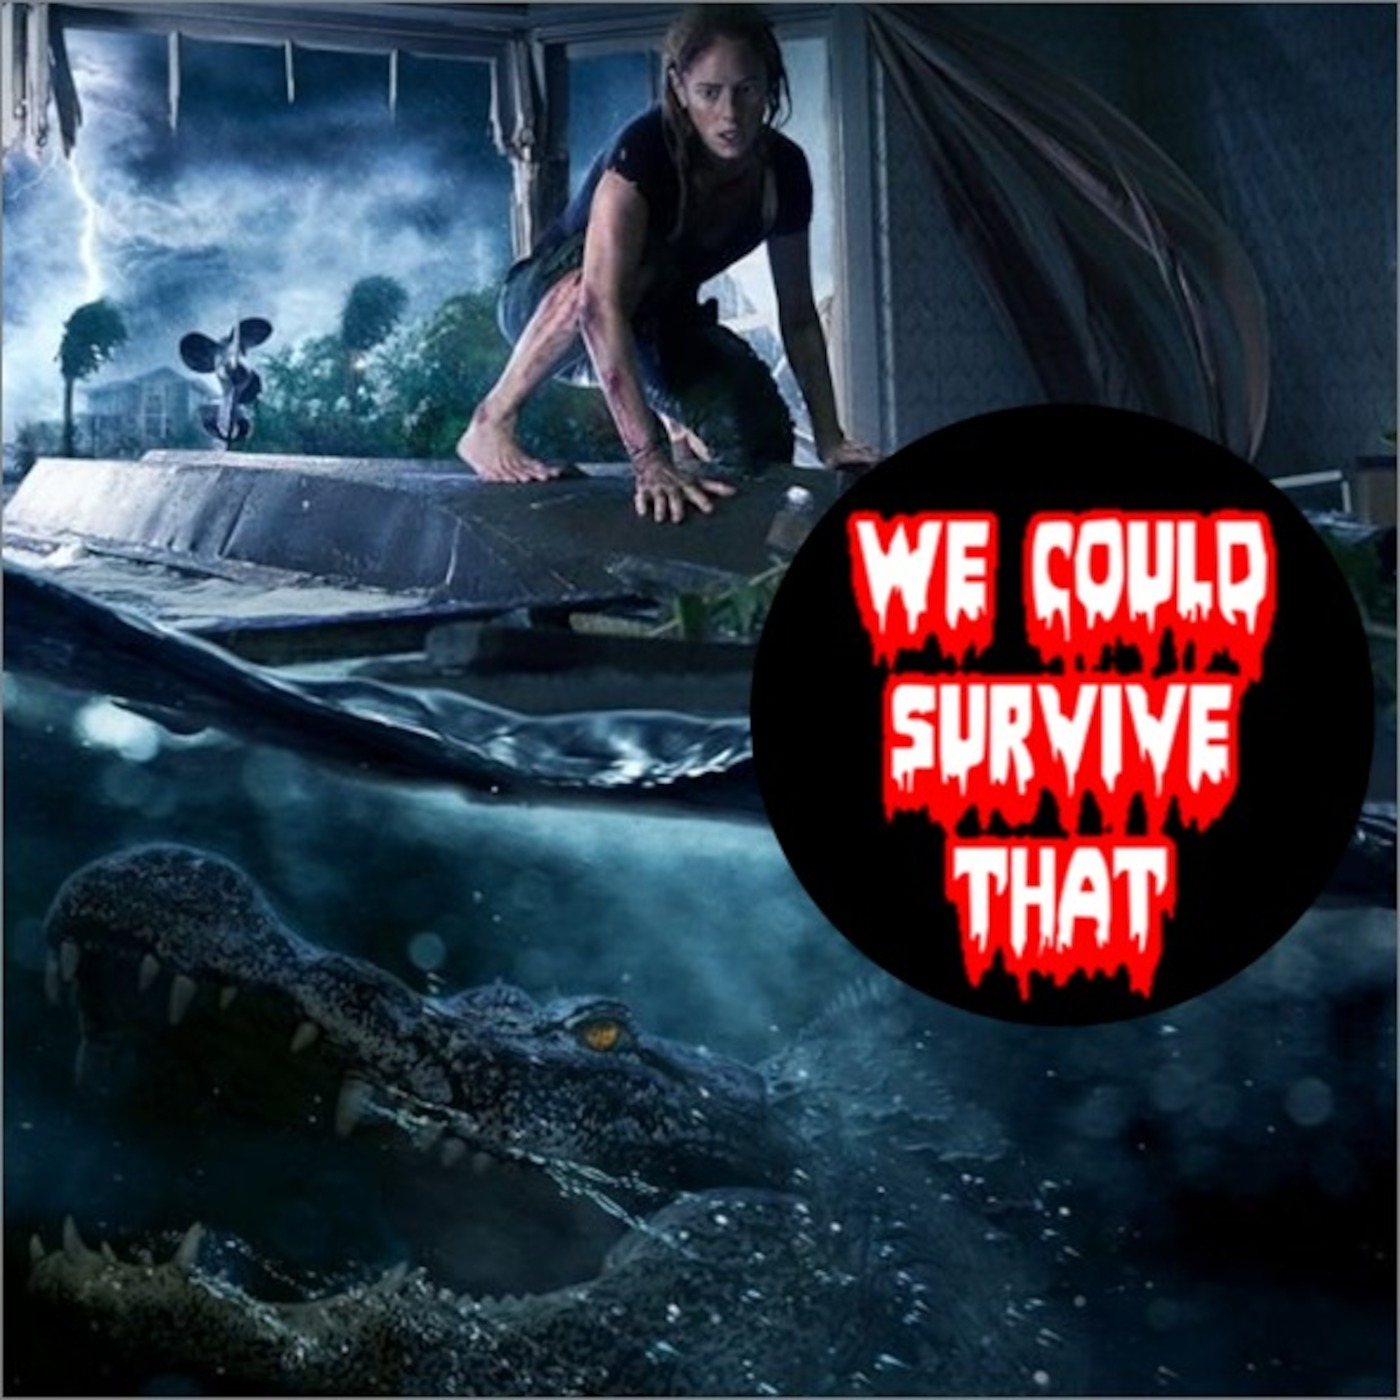 Episode 234- Crawl (2019) We Could Survive That podcast